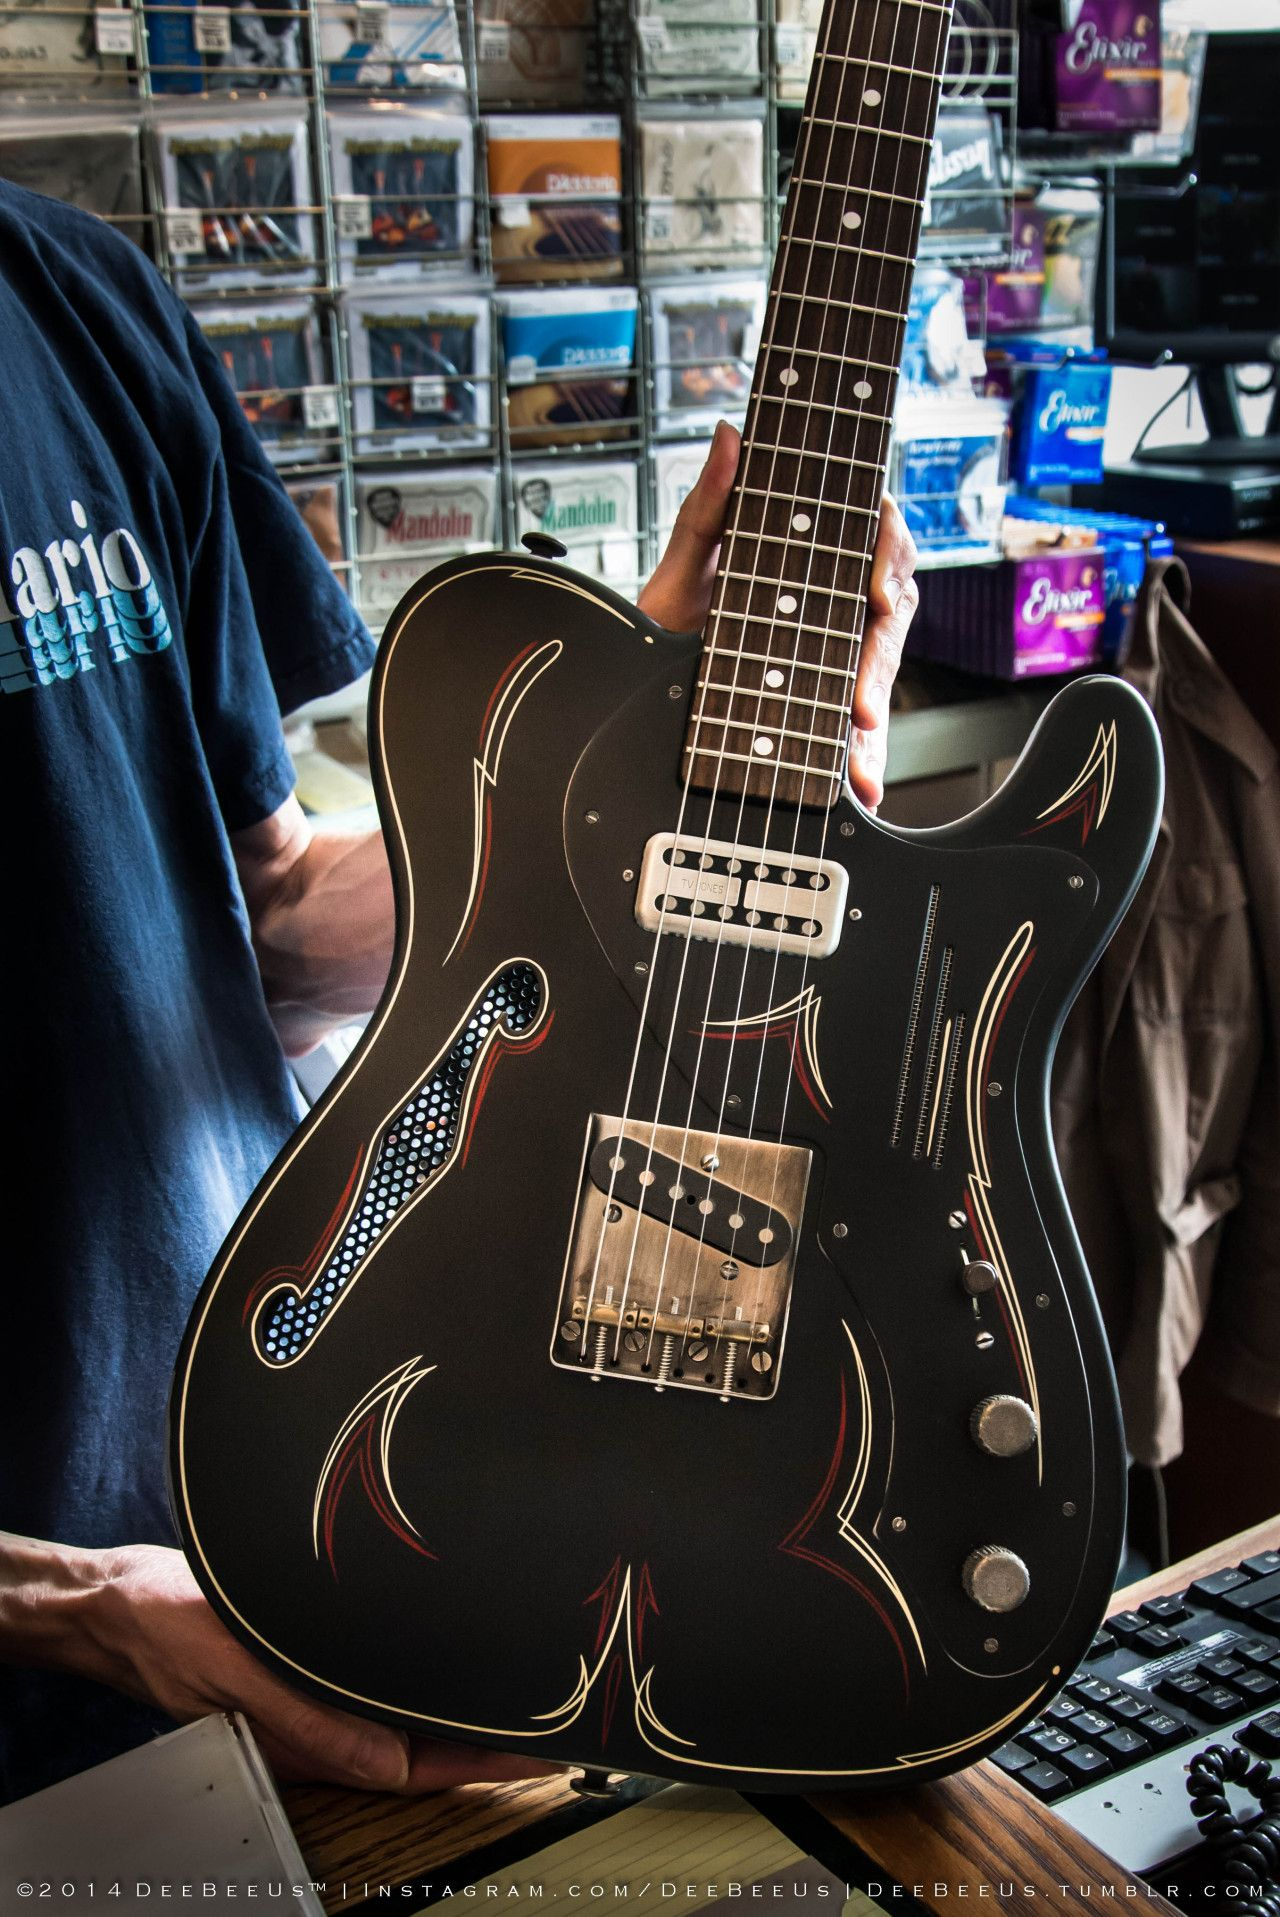 Here S A Quickie From My Visit To The Twelfth Fret Toronto Yesterday More Photos To Follow Duh D I Have Always Th Guitar Guitar Collection Fender Guitars